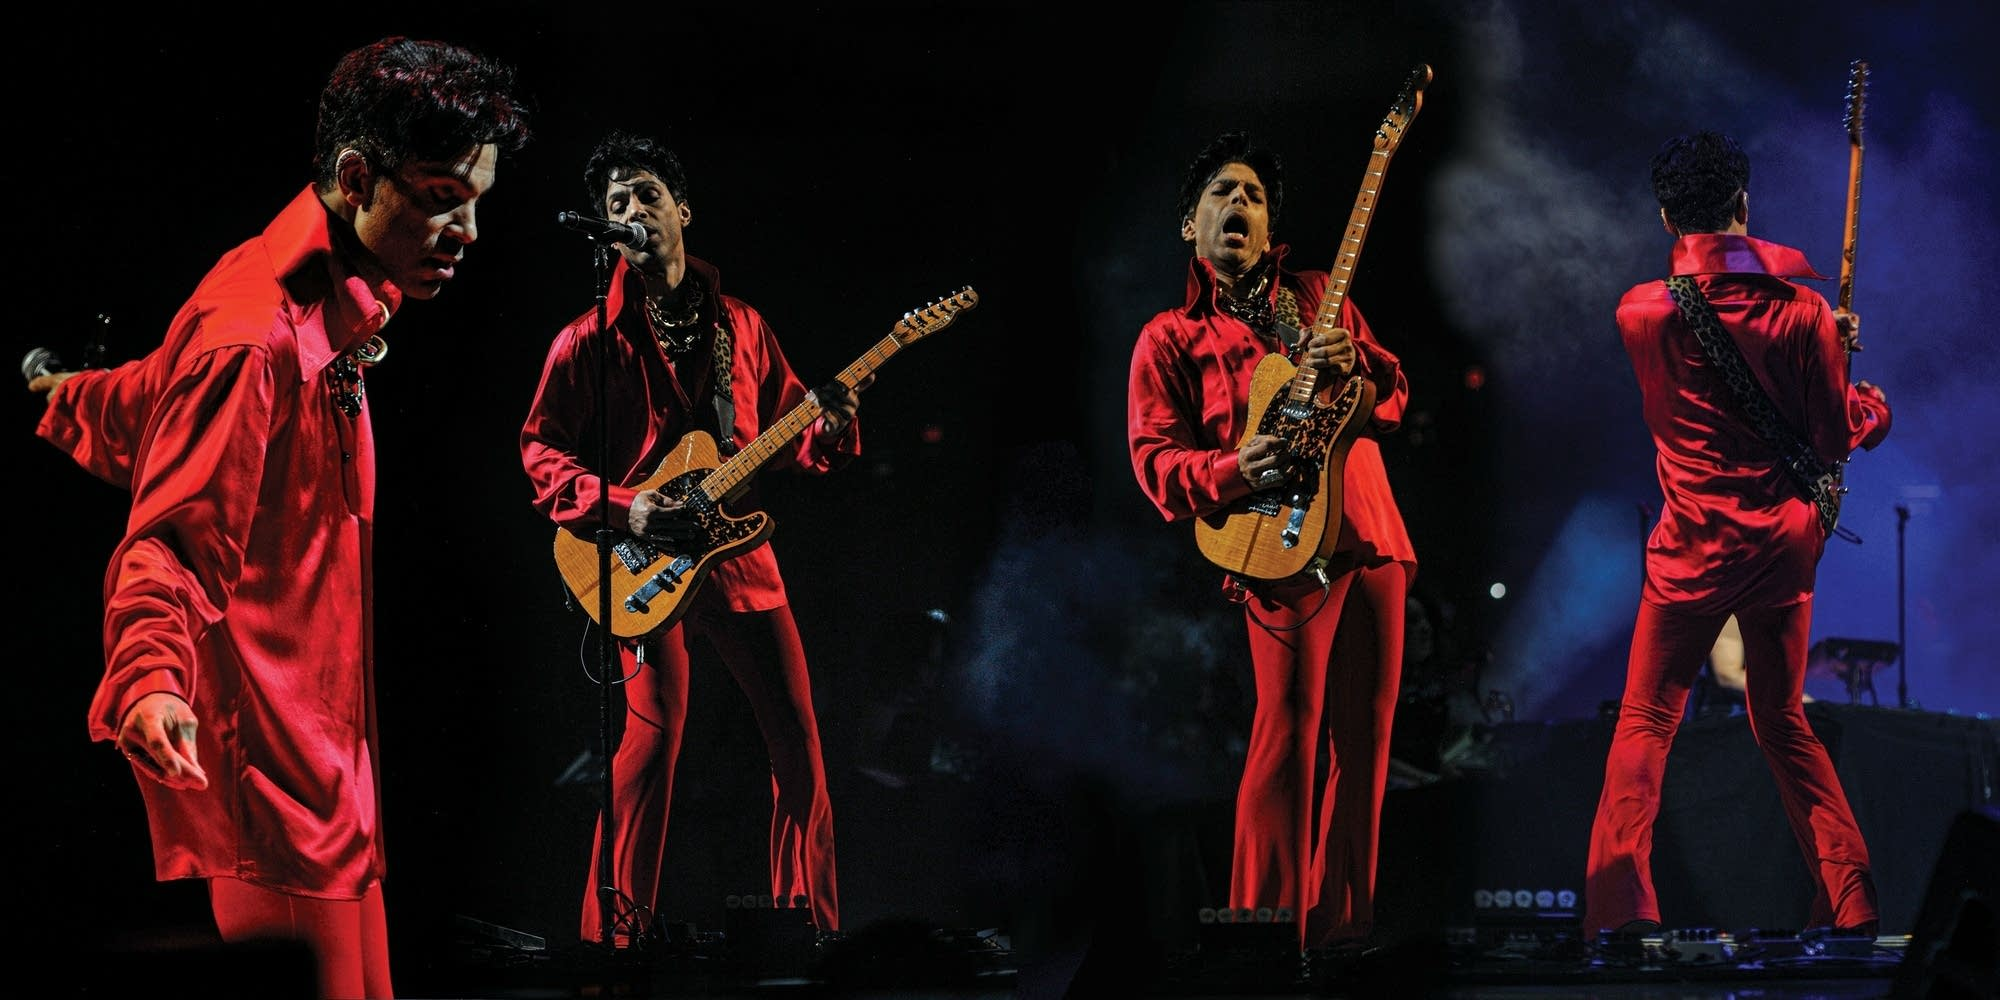 Composite photo of Prince in various poses onstage.